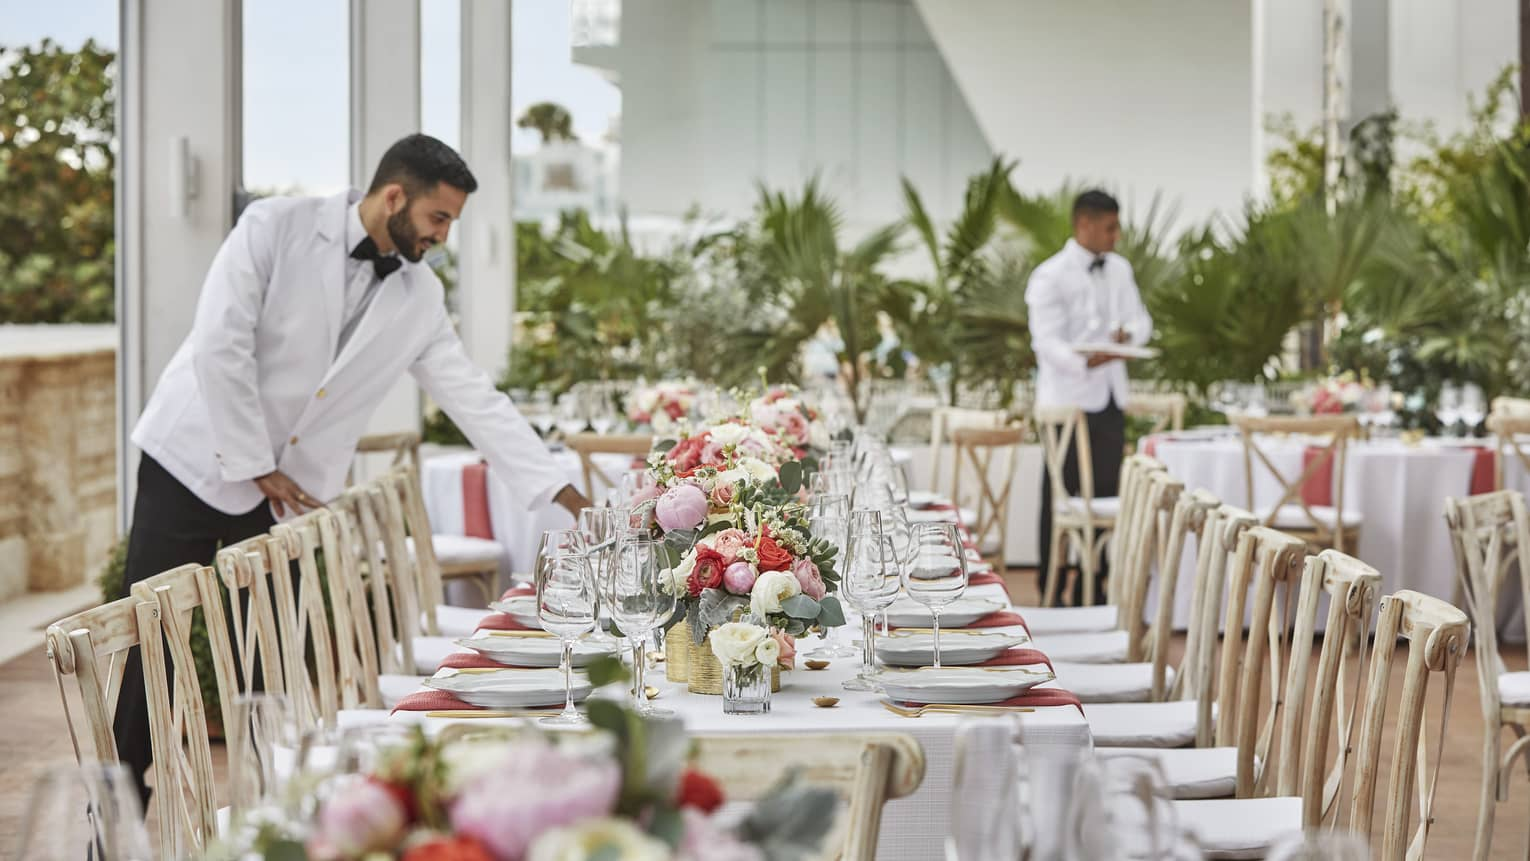 Hotel staff wearing white suit jackets set long wedding dining table with flowers